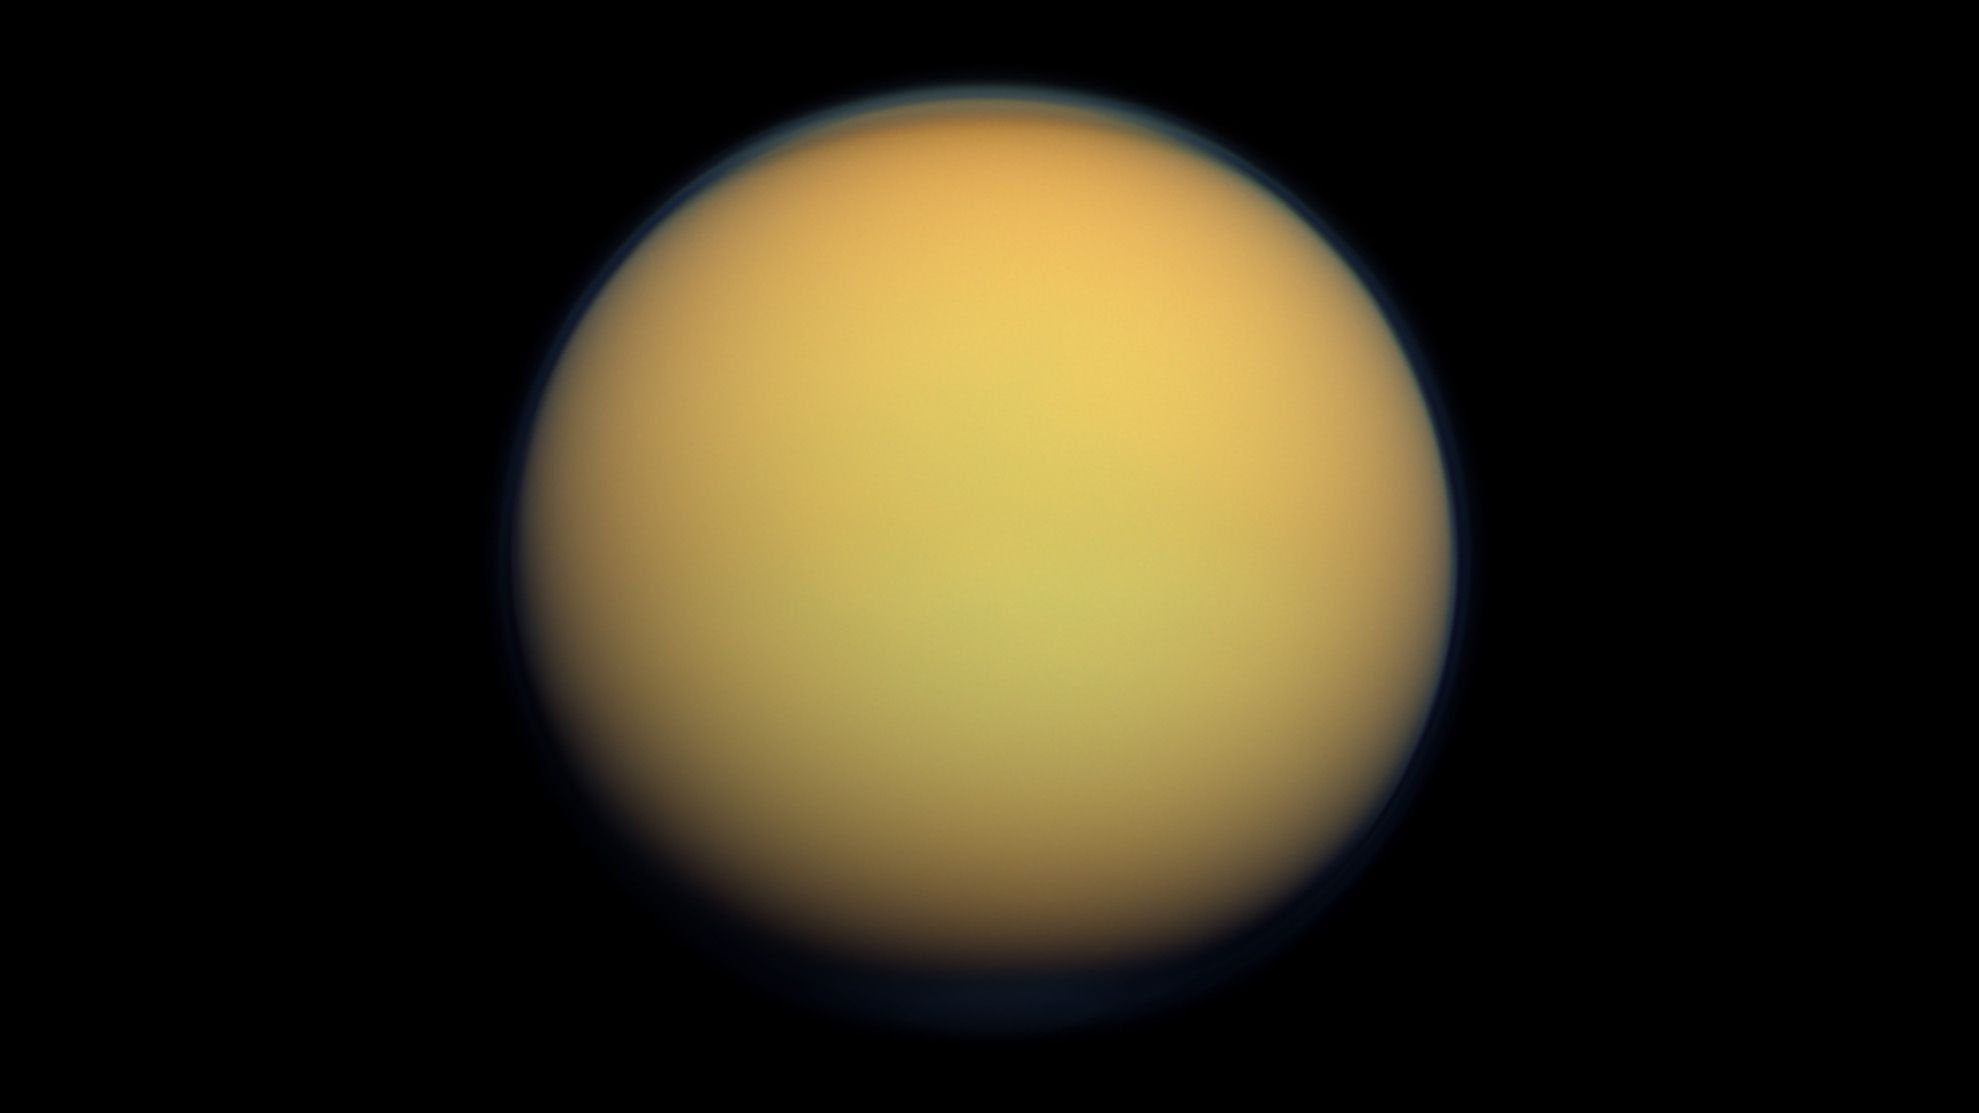 Titan (Saturn)  Titan is the largest moon of Saturn. It is the only moon known to have a dense atmosphere, and the only object in space other than Earth where clear evidence of stable bodies of surface liquid has been found. Titan is the sixth gravitationally rounded moon from Saturn. Frequently described as a planet-like moon